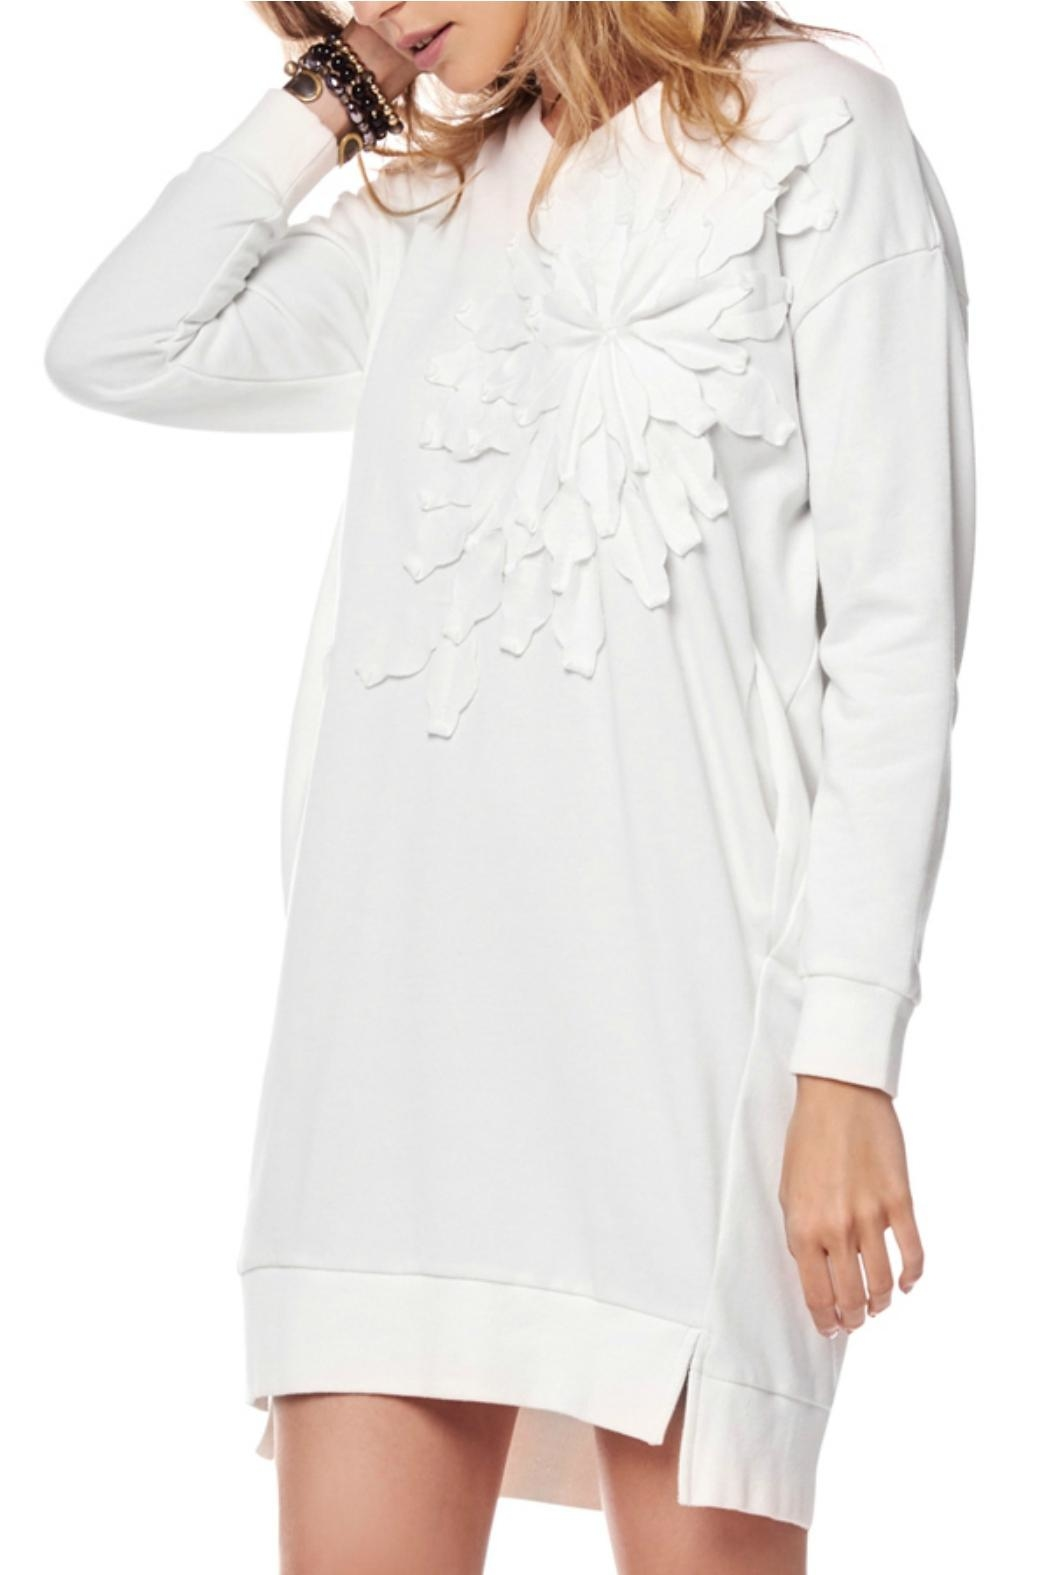 Gracia Oversized White Dress - Front Cropped Image